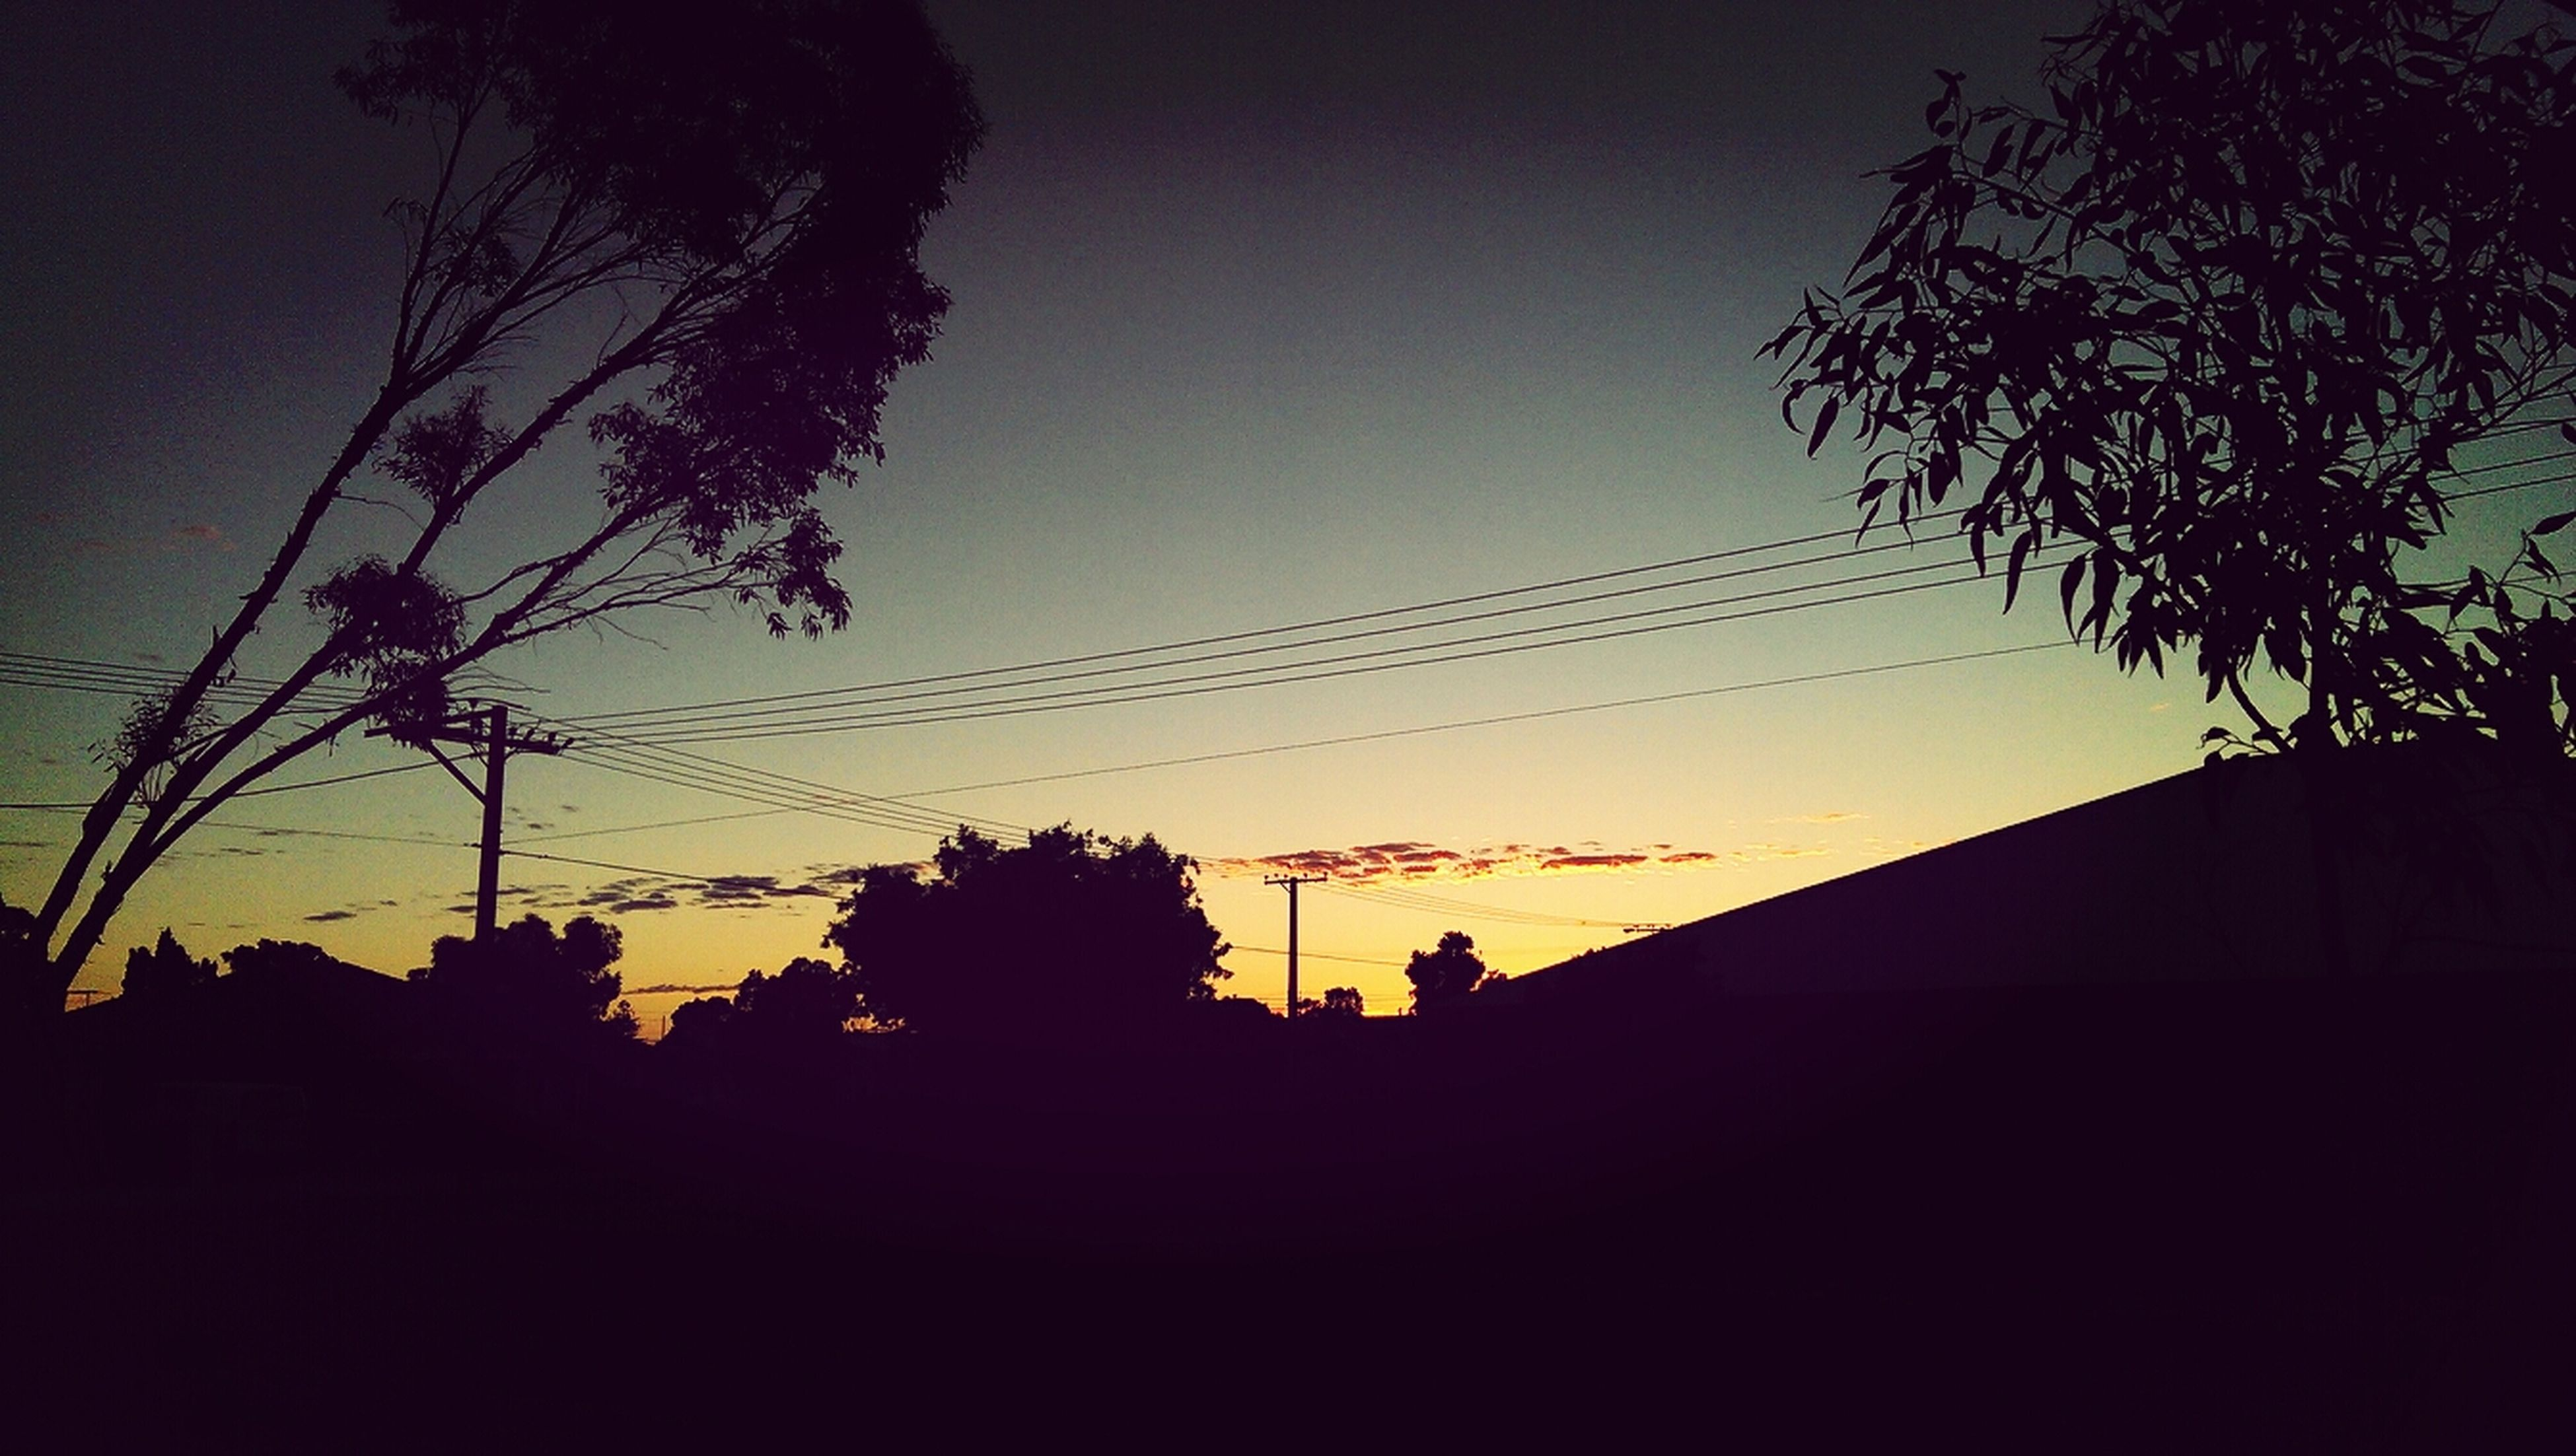 silhouette, sunset, tree, power line, low angle view, electricity pylon, sky, dark, outline, connection, clear sky, cable, branch, dusk, nature, tranquility, bare tree, copy space, beauty in nature, electricity